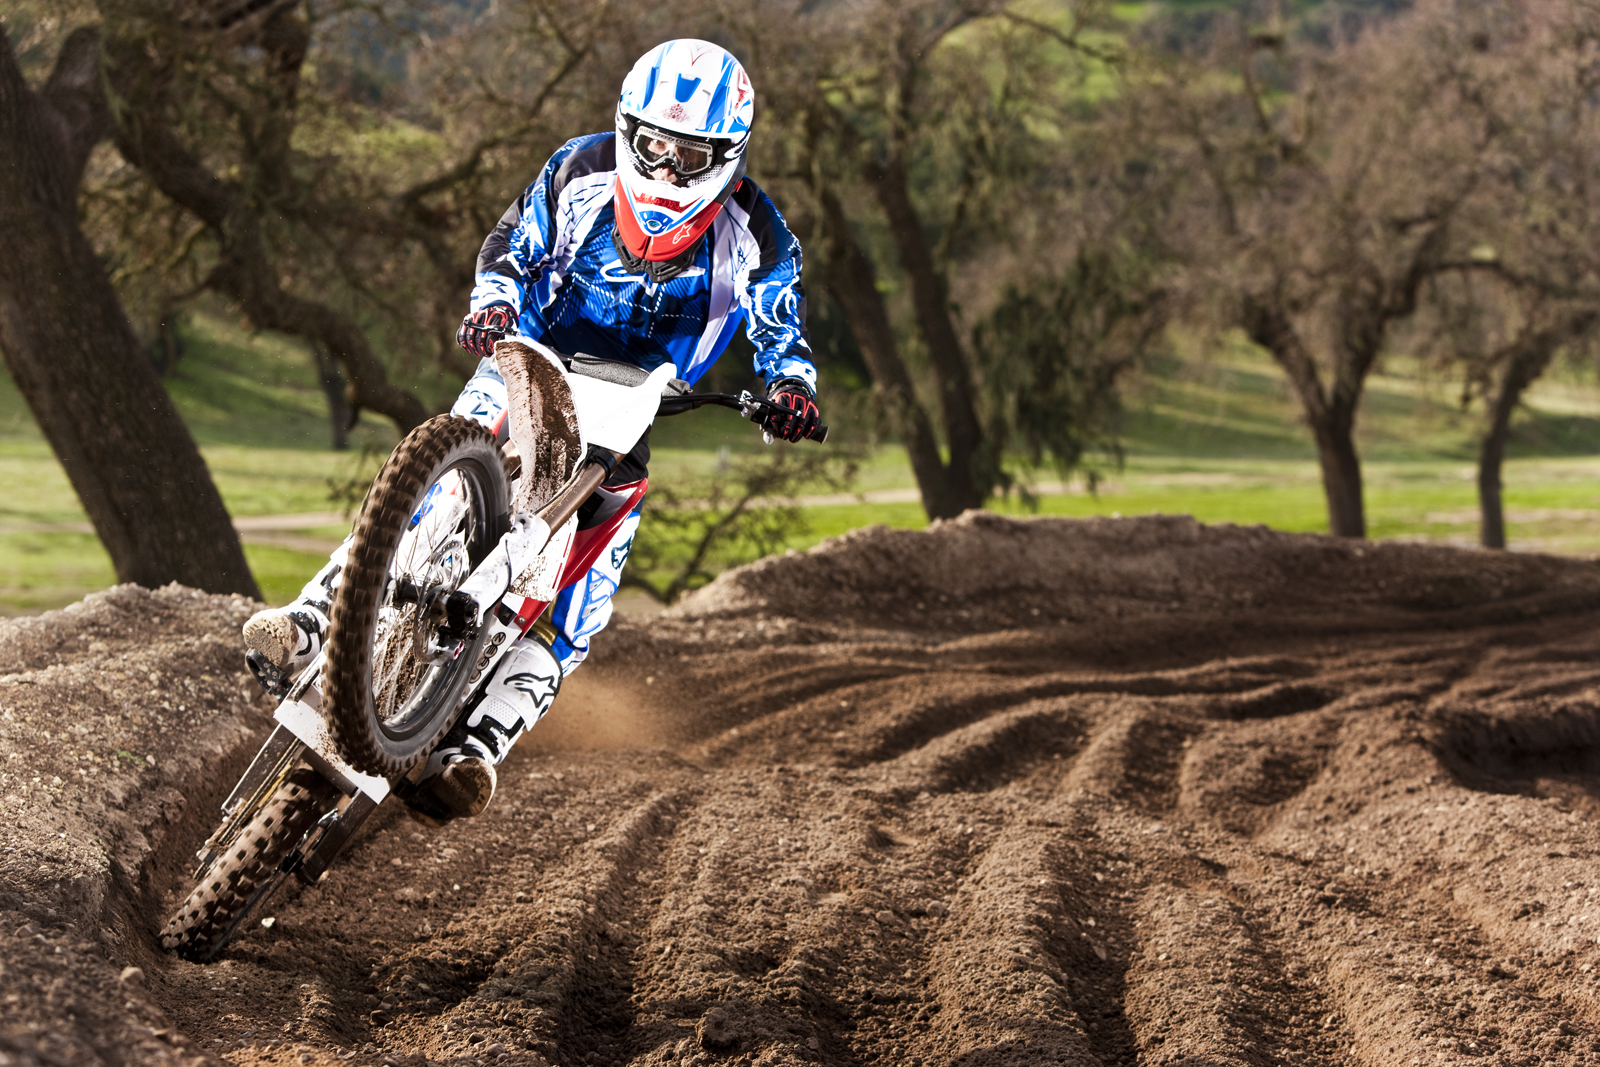 2010 Zero MX Electric Motorcycle: Zaca Station - Wheelie out of Corner